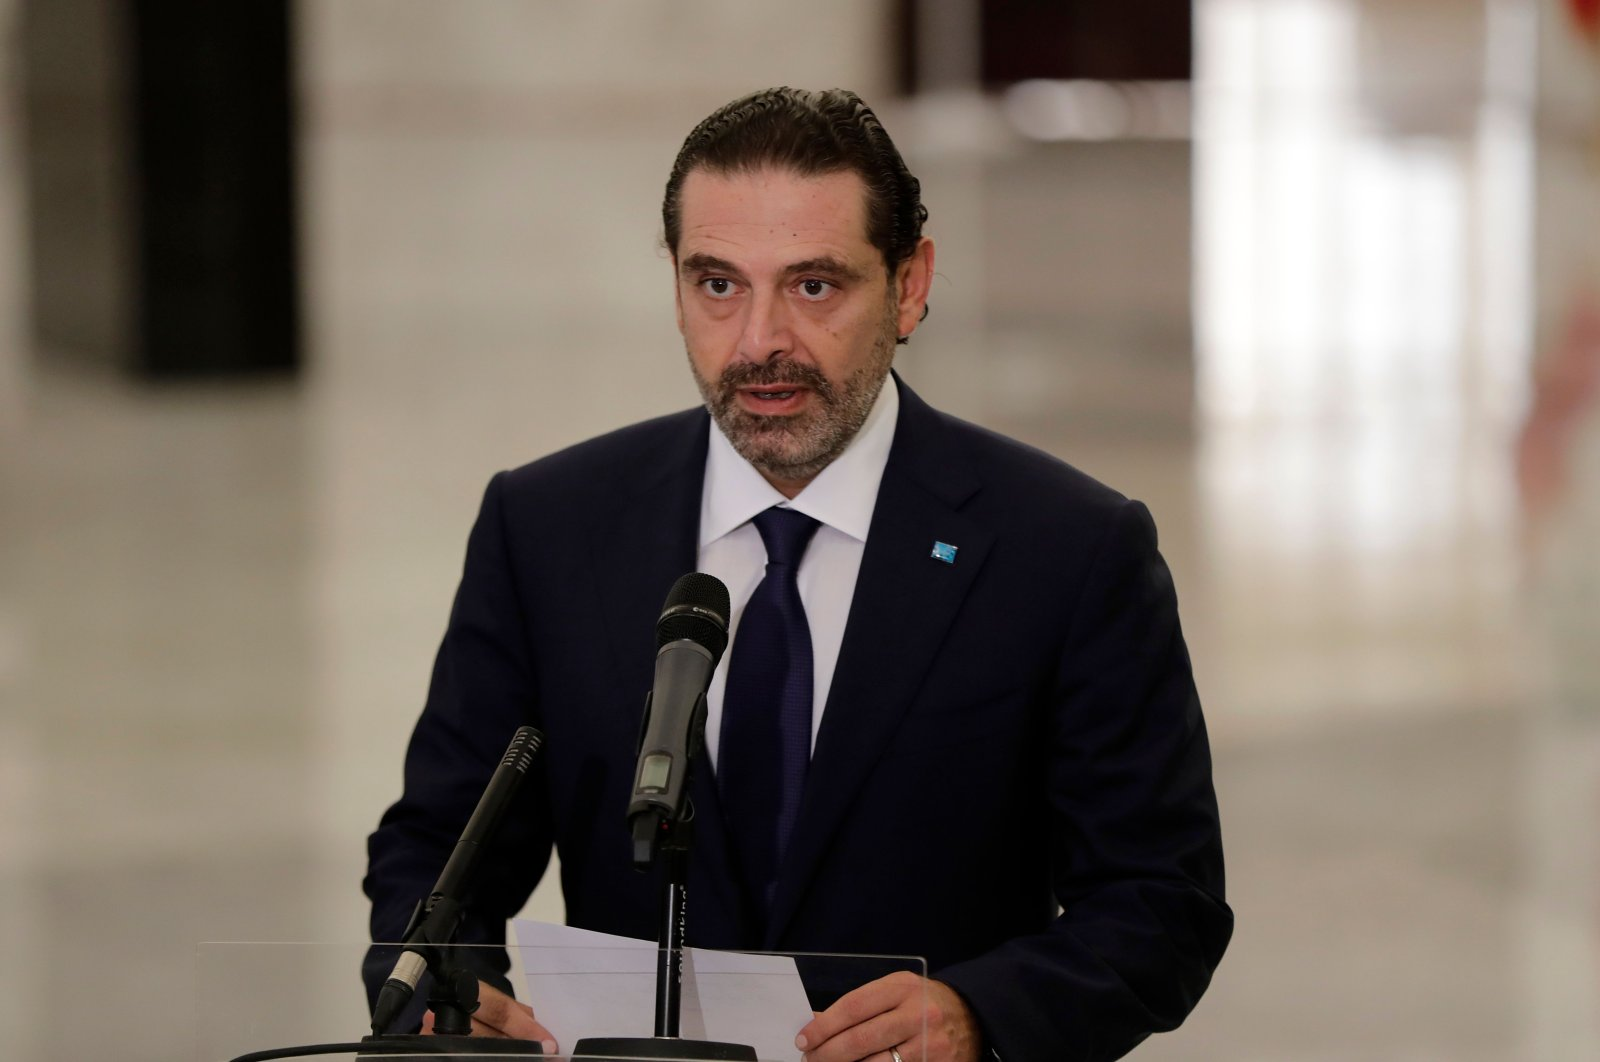 Former Lebanese Prime Minister Saad Hariri delivers a statement after the president named him to form a new Cabinet, at the presidential palace, Baabda, Lebanon, Oct. 22, 2020. (AFP Photo)